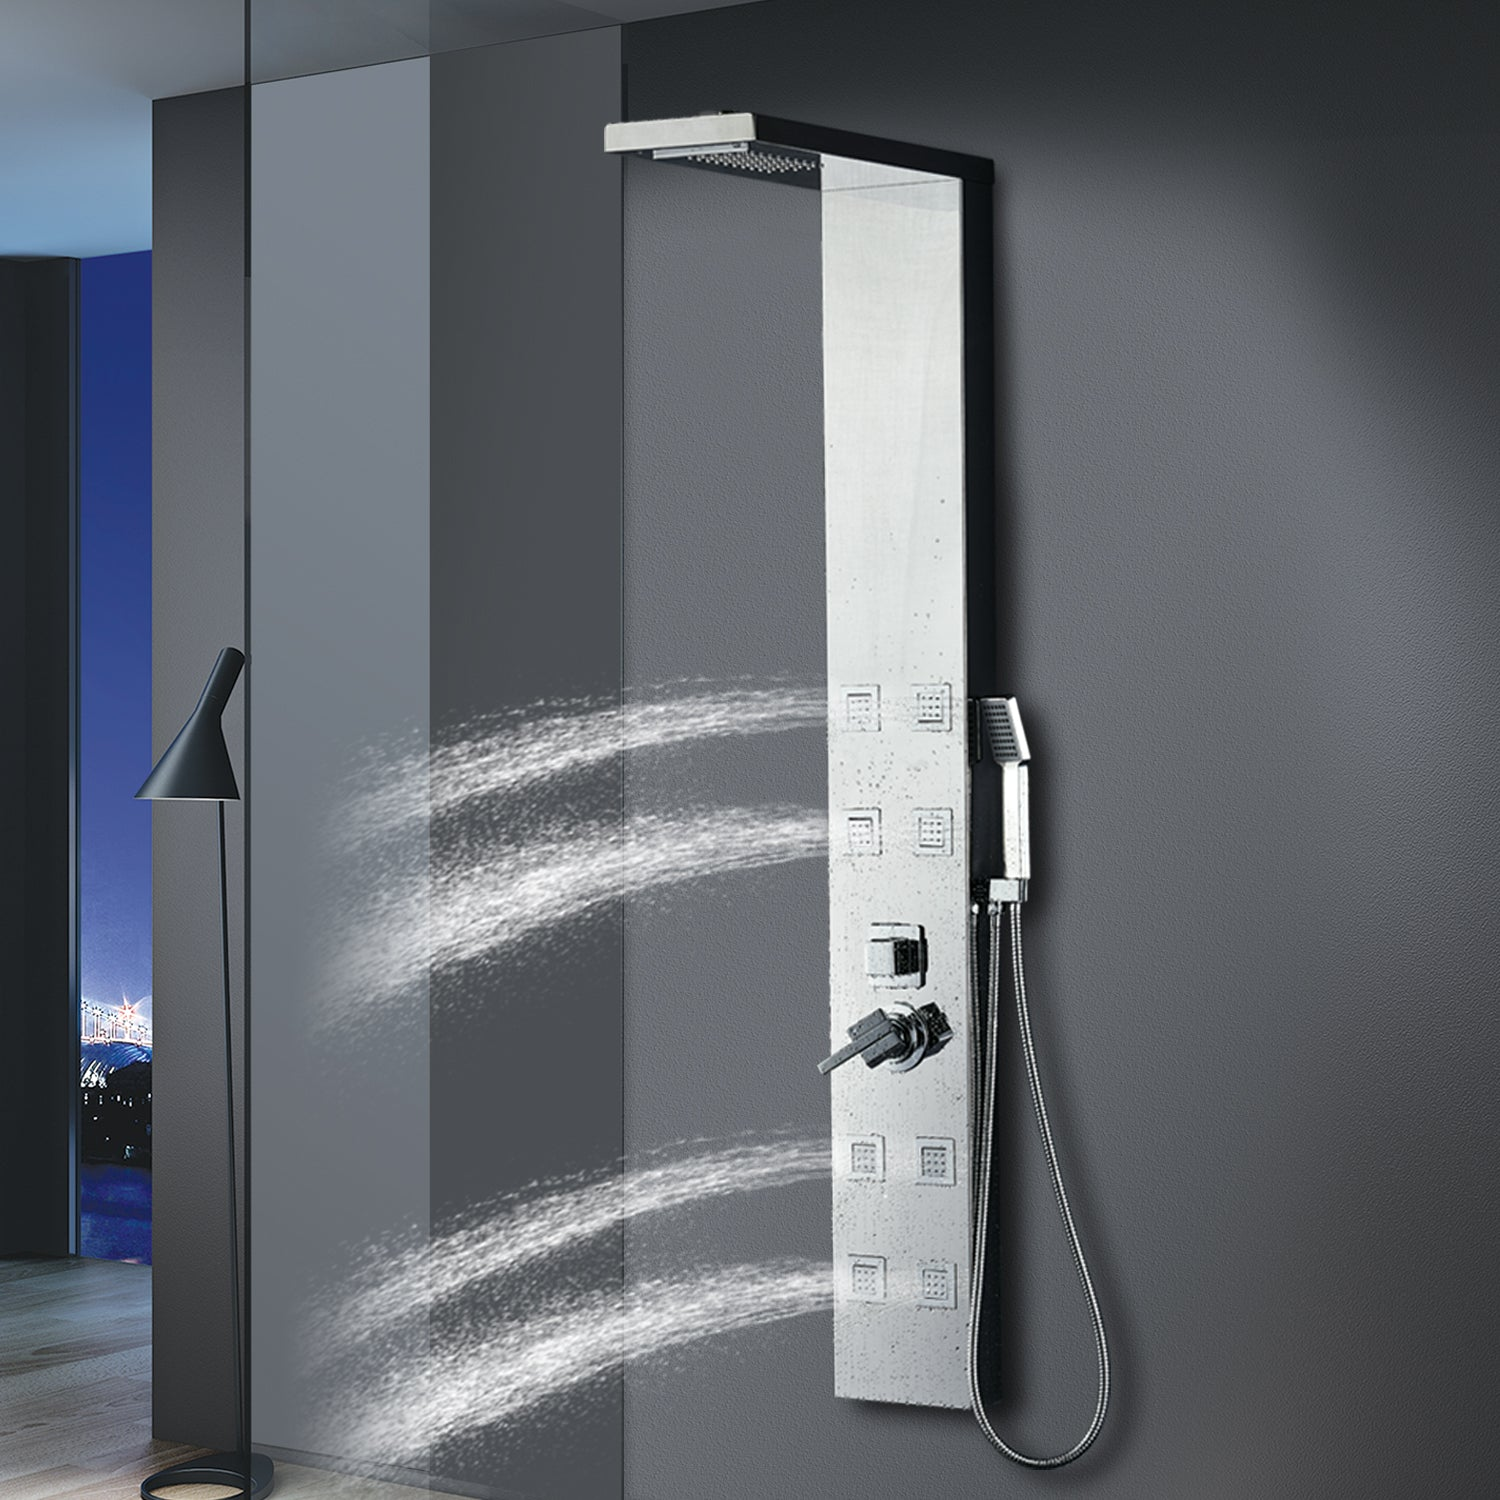 Vantory Stainless Steel Shower Panel Tower System,8K Mirror Rainfall  Waterfall Shower Head Massage System